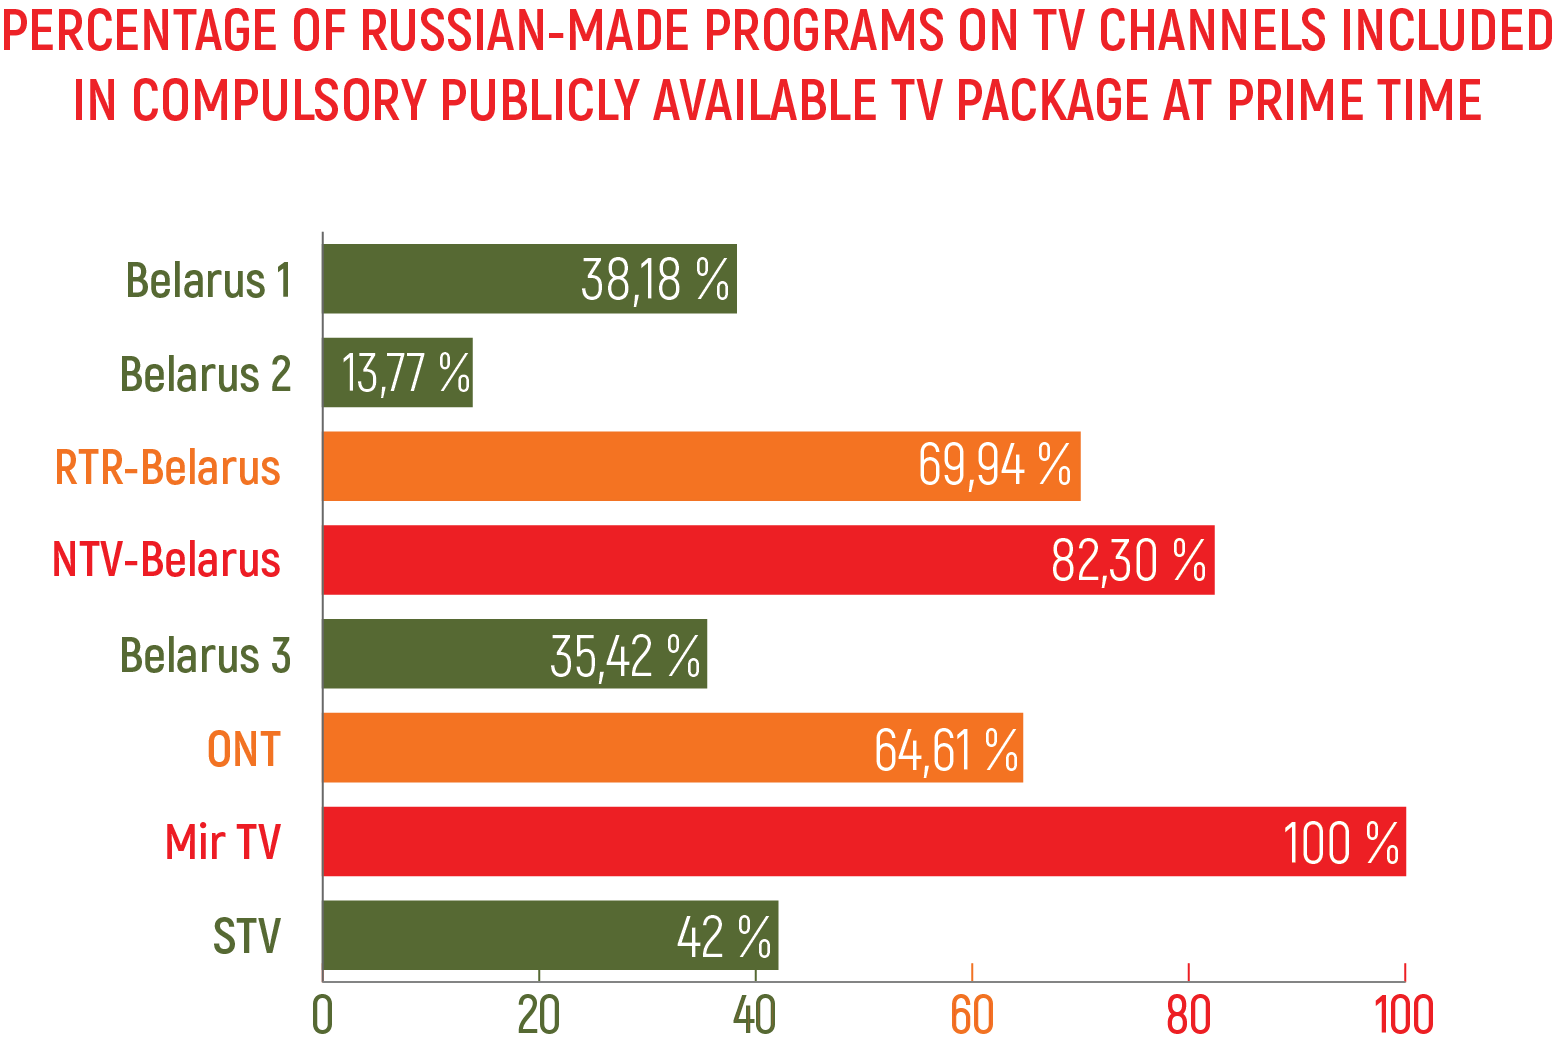 Percentage of Russian-made programs on TV channels included in compulsory publicly available TV package at prime time